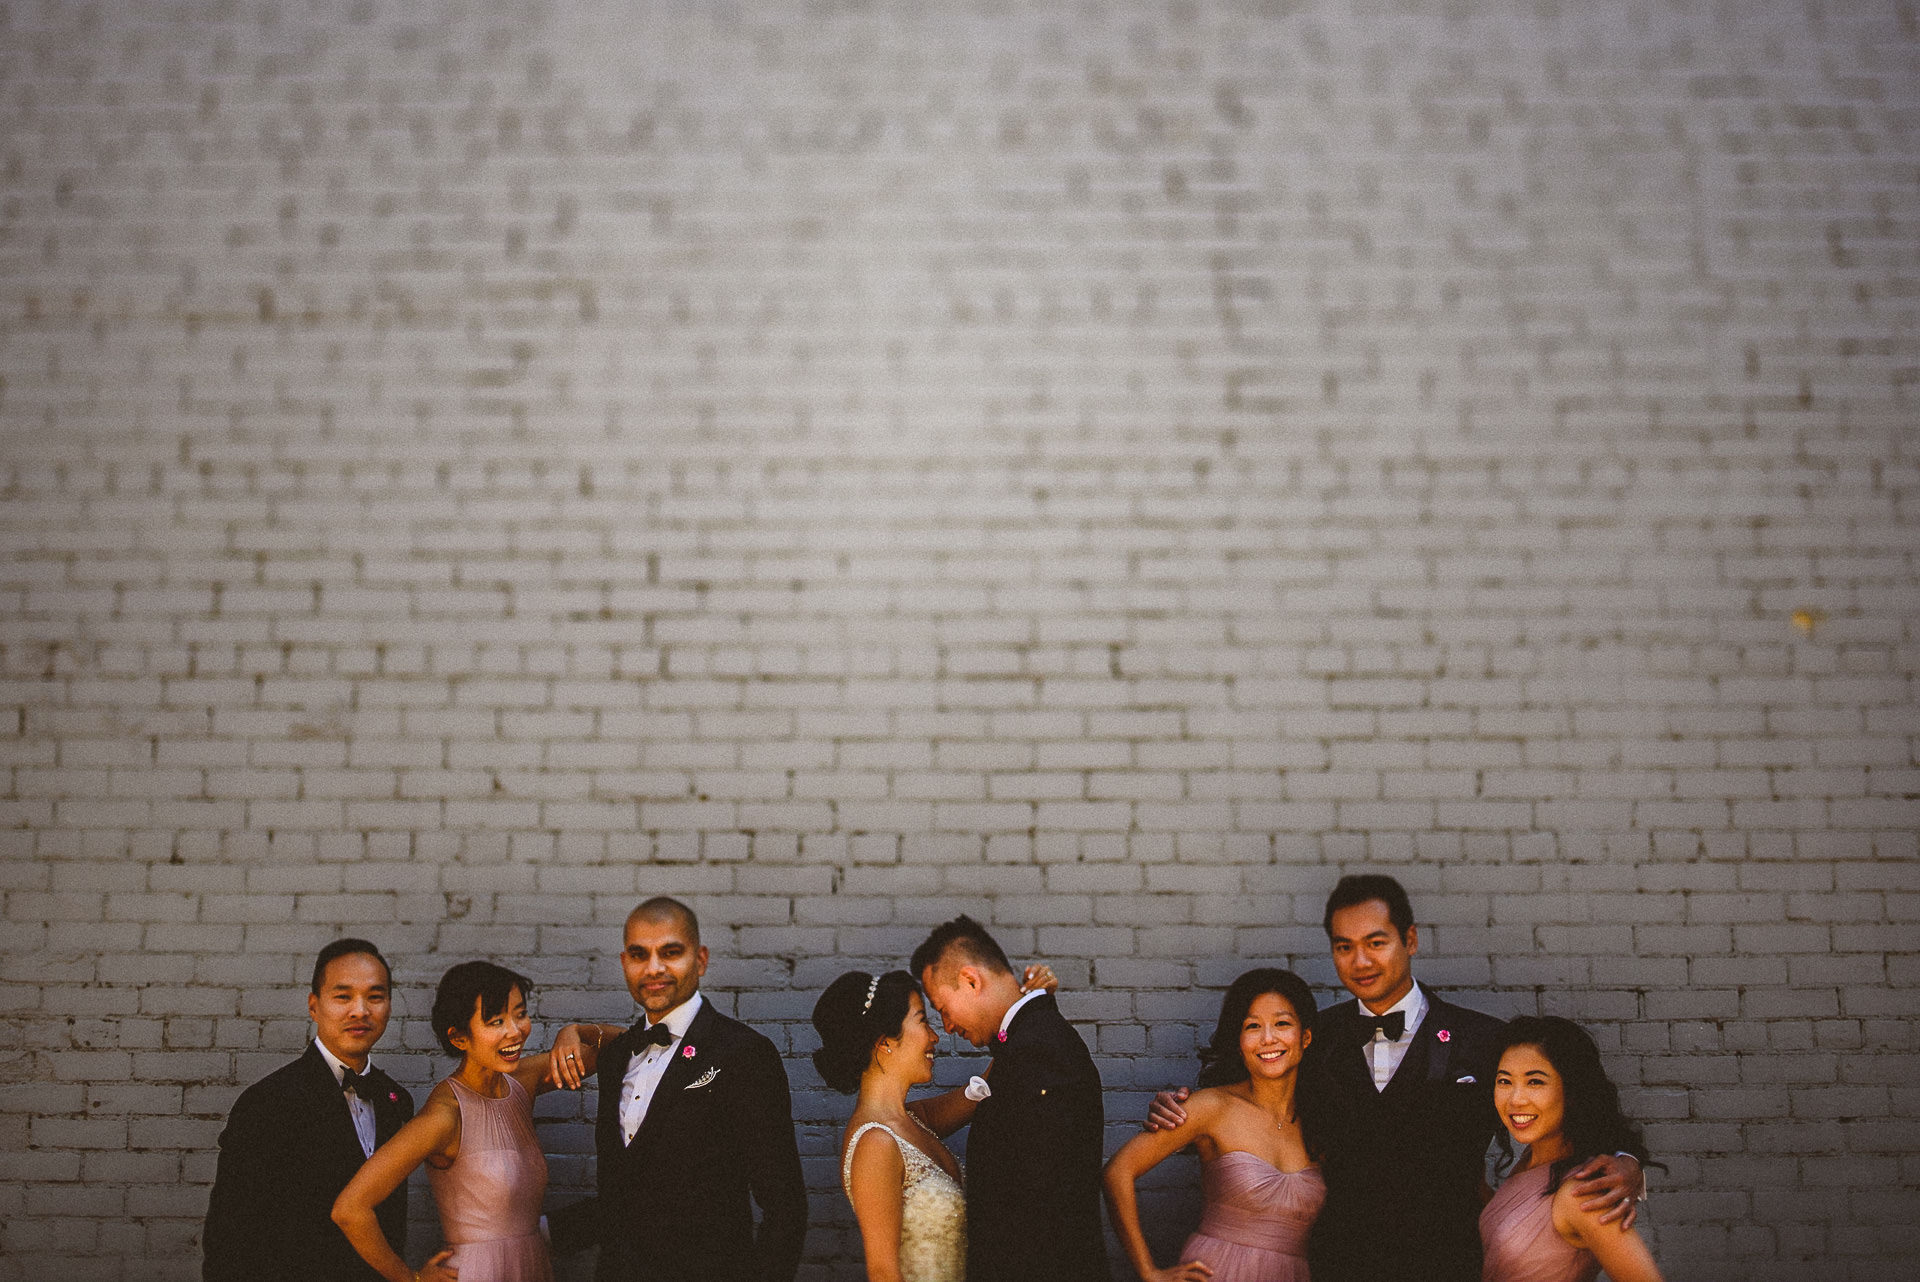 Clean backdrop for wedding party photograph